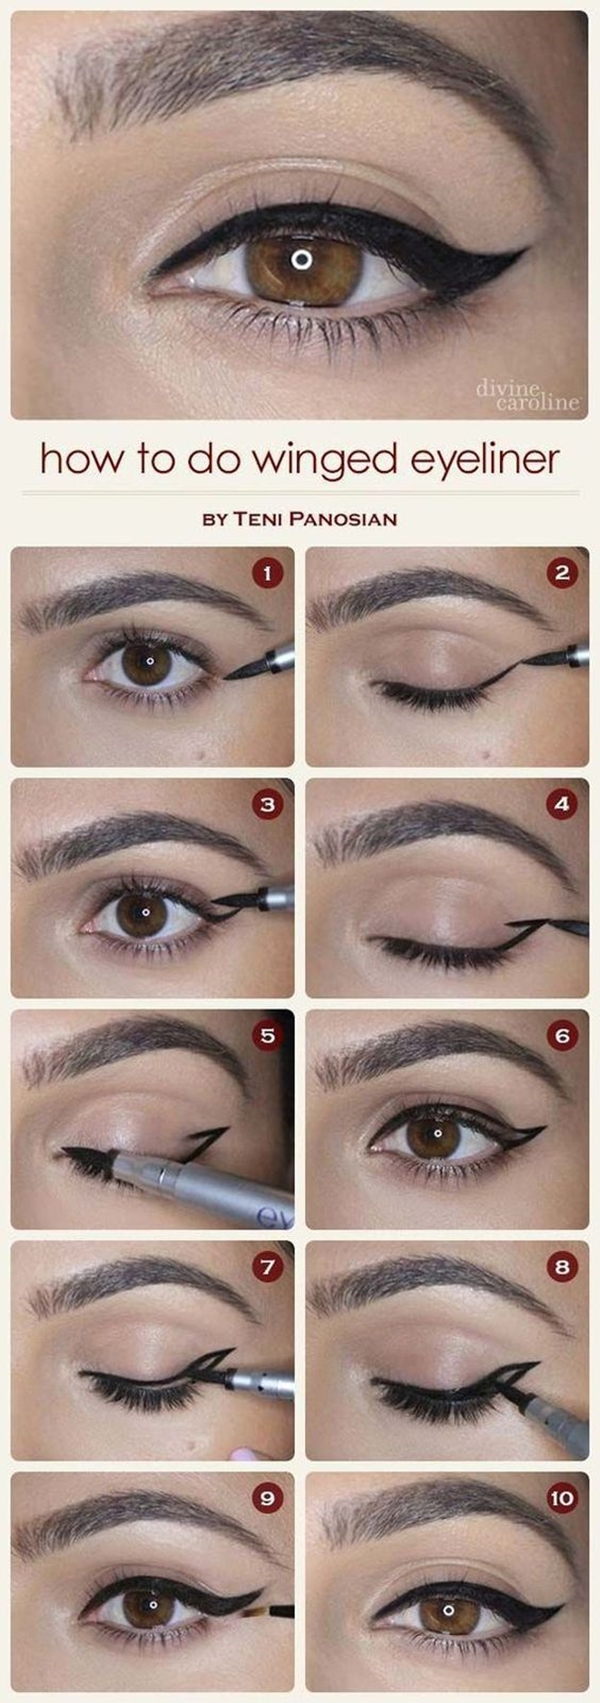 Six-Minutes-Makeup-Guides-For-Working-Wome